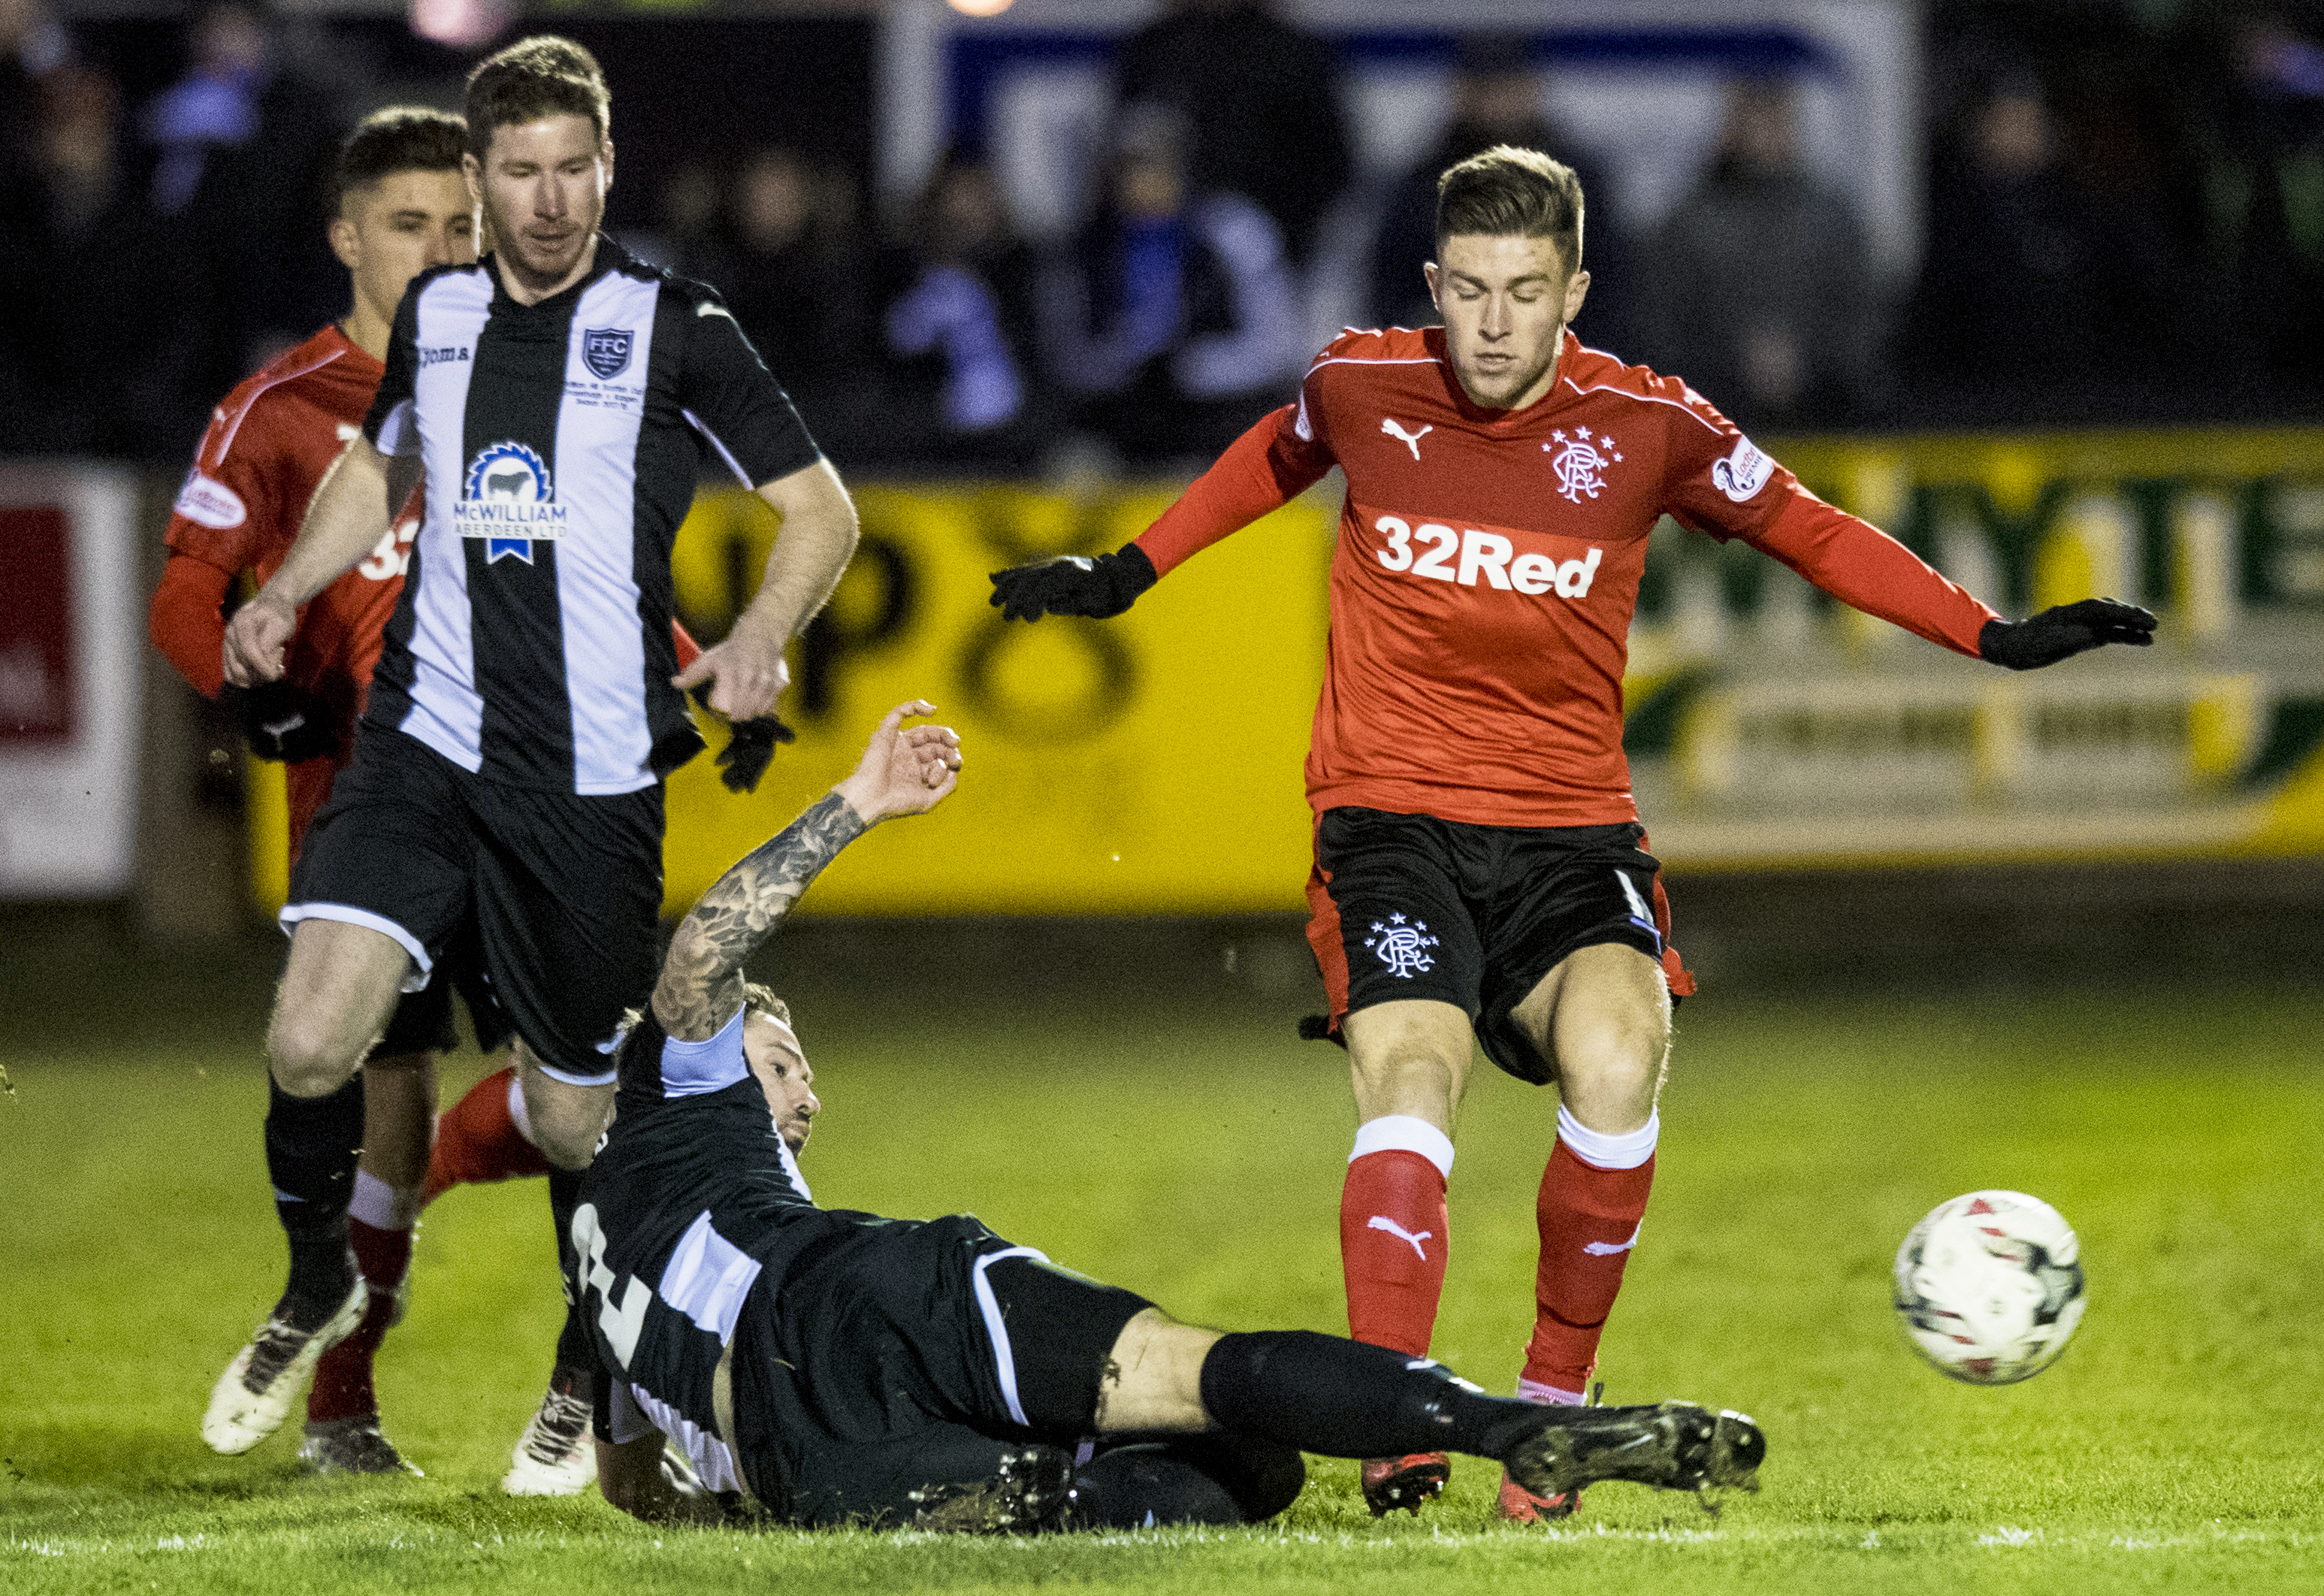 Rangers' Josh Windass, left, is tackled by Marc Dicks.